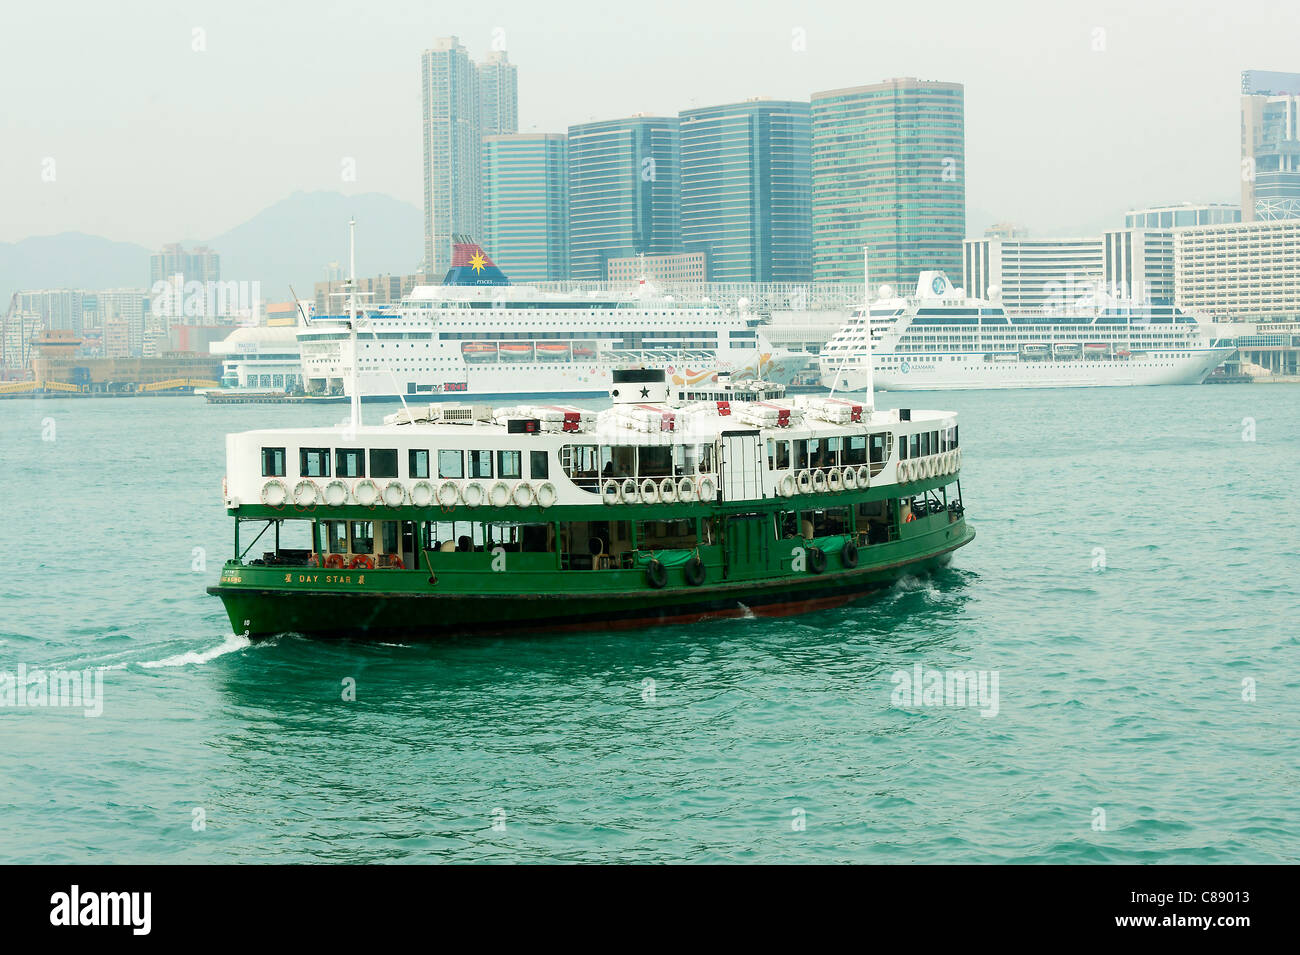 Star Ferry Line Ferryboat Day Star Sailing from Central Pier Honk Kong Island Towards Kowloon China Asia - Stock Image